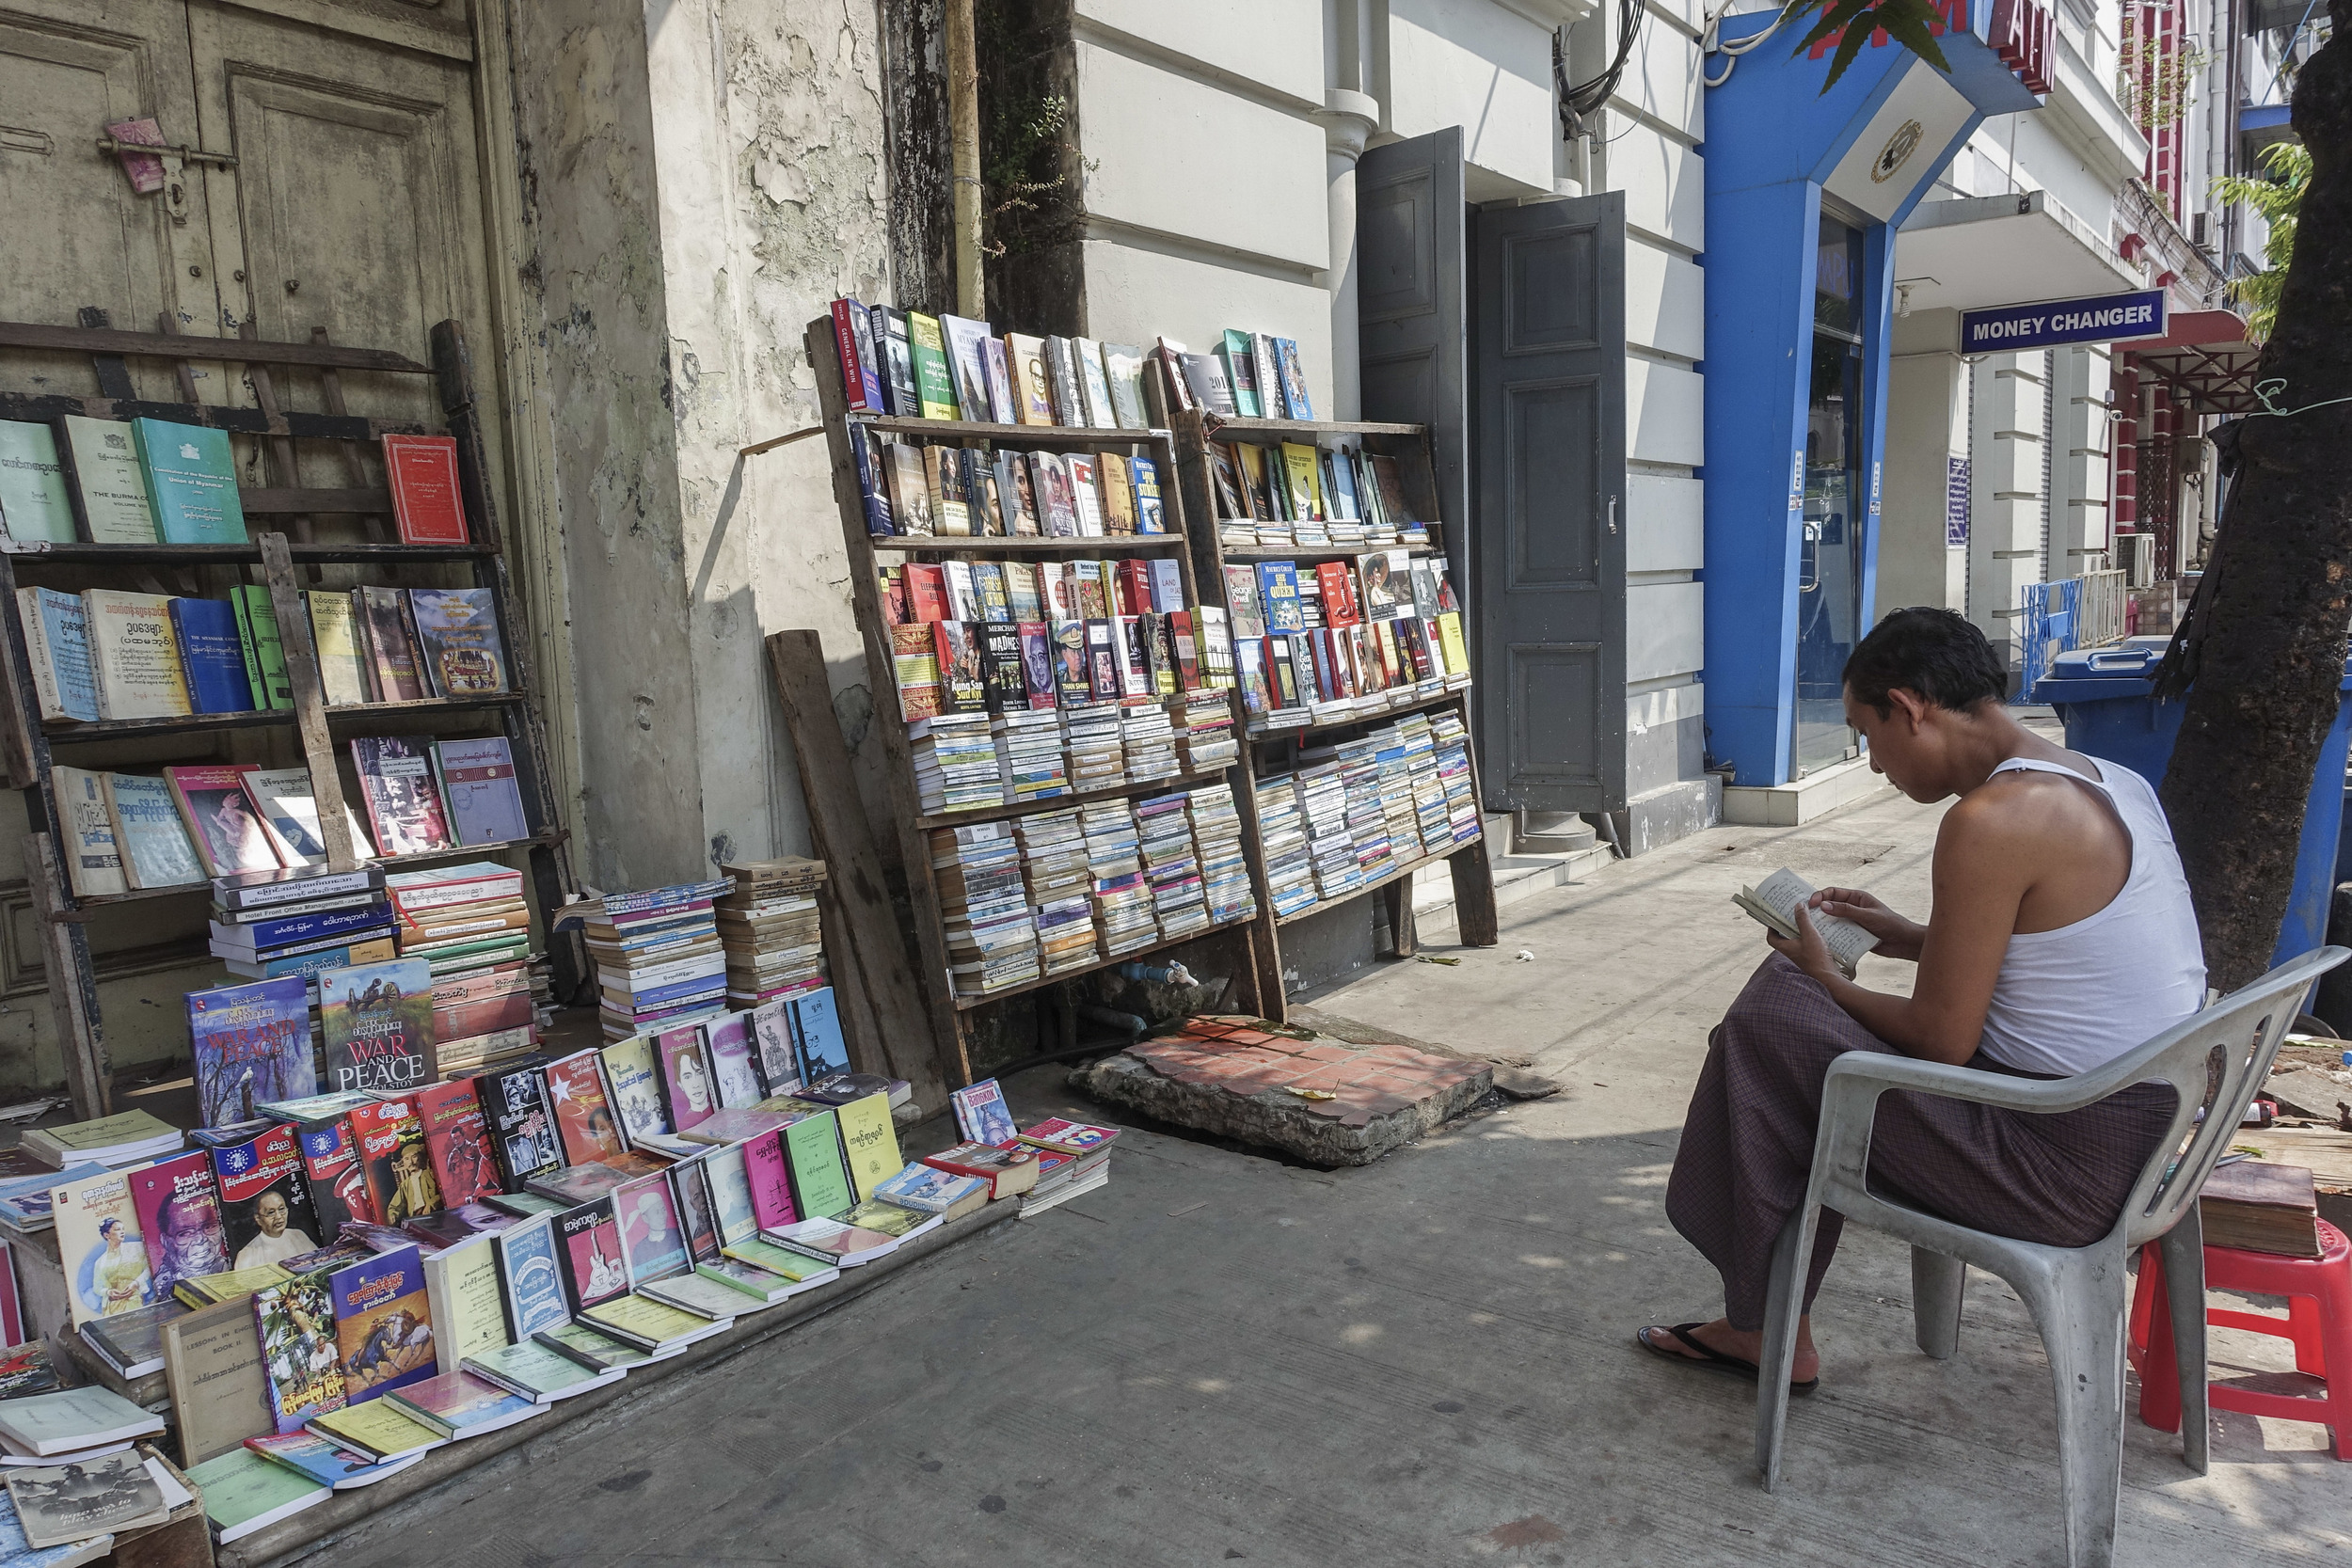 Books proliferate on Pansodan Street, a longtime home of numerous bookstores and street booksellers.